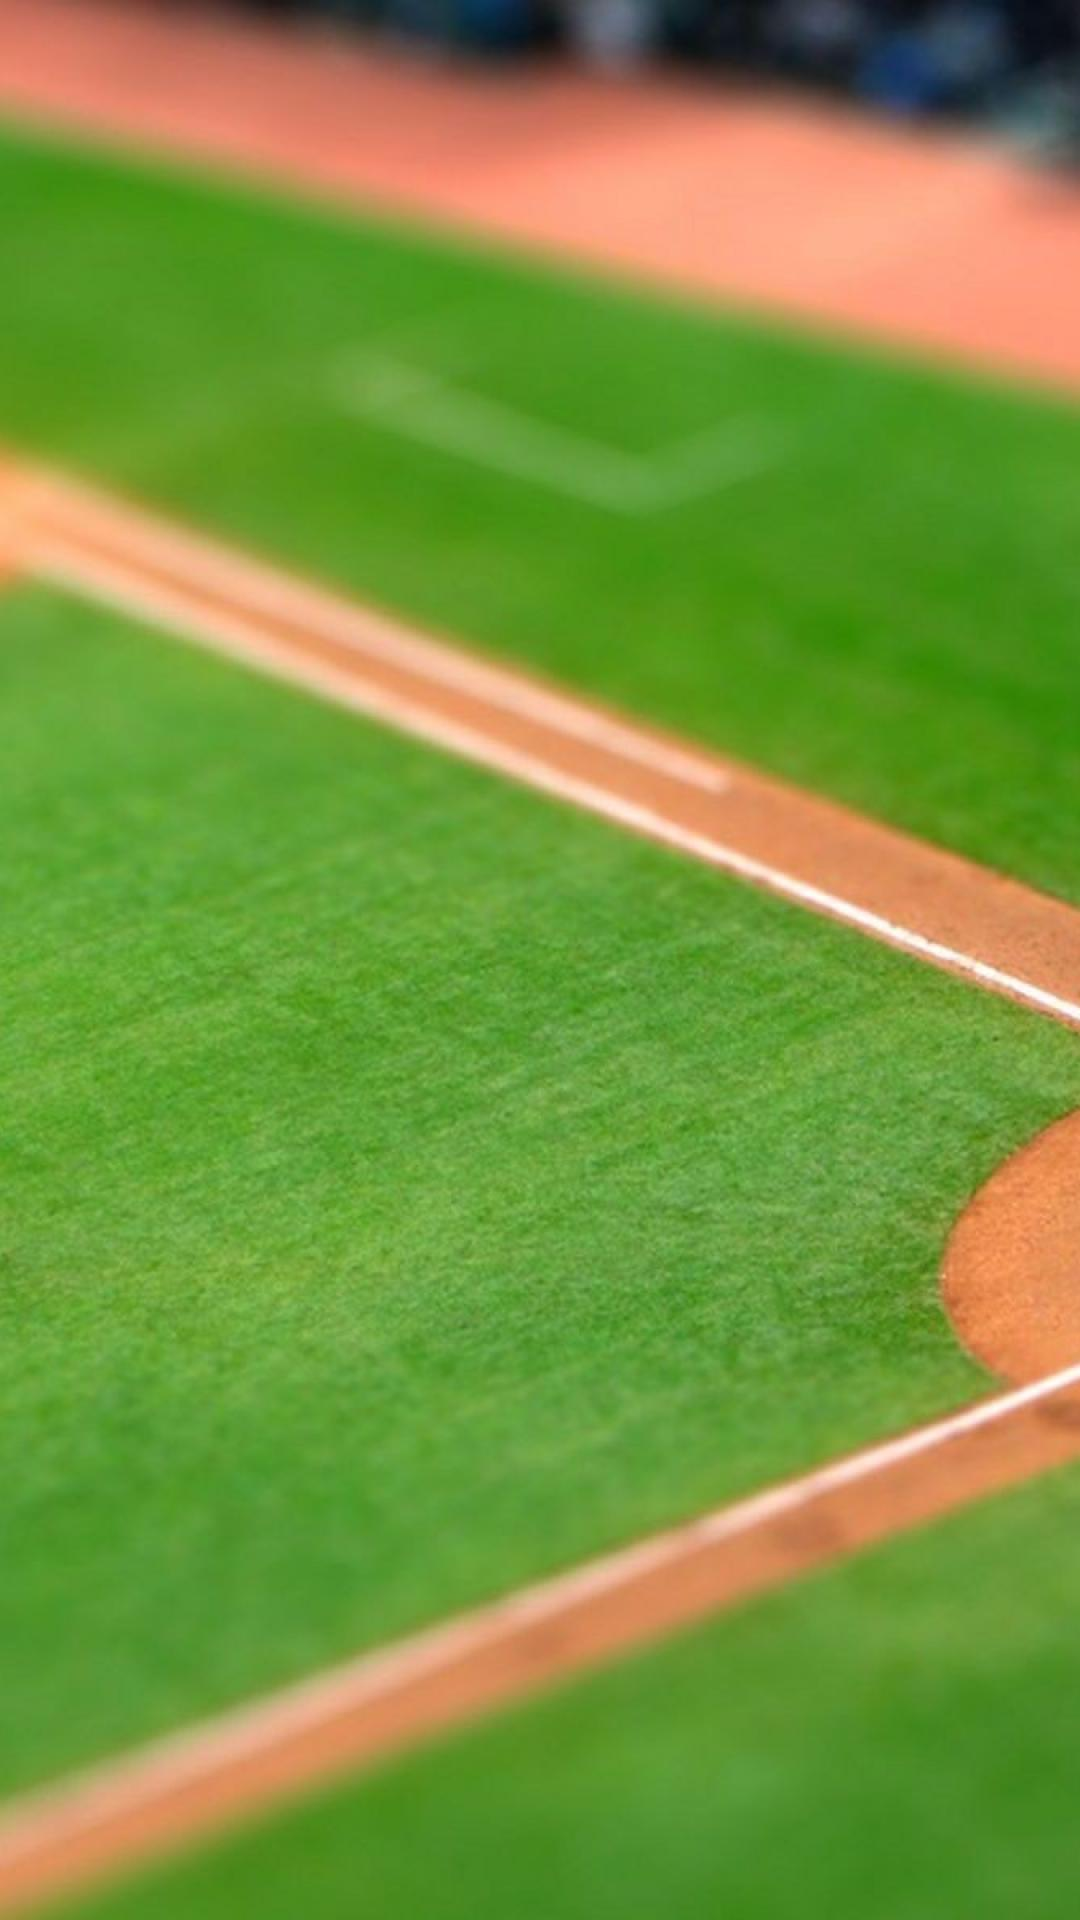 baseball field wallpaper wallpapersafari